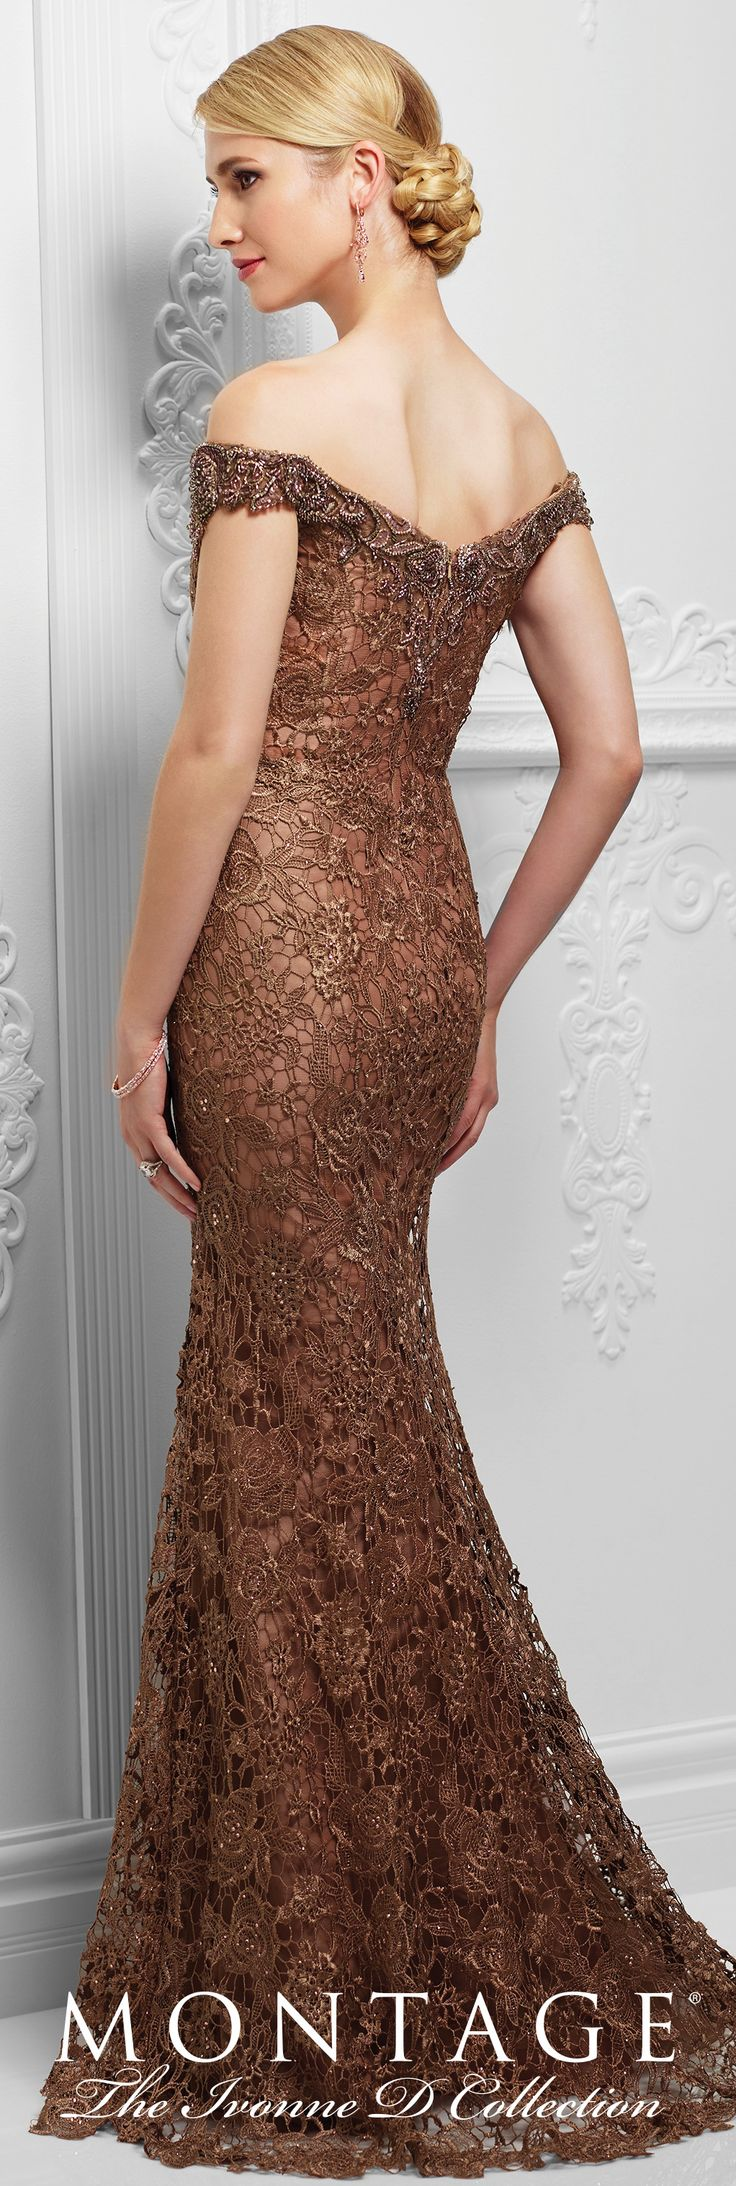 Ivonne D Exclusively for Mon Cheri - 117D71 - Off-the-shoulder tulle and embroidered lace slim A-line gown with front and back hand-beaded lace necklines, scalloped lace hemline, slight sweep train.Sizes: 4 – 20, 16W– 26WColors: Bronze, Wedgwood